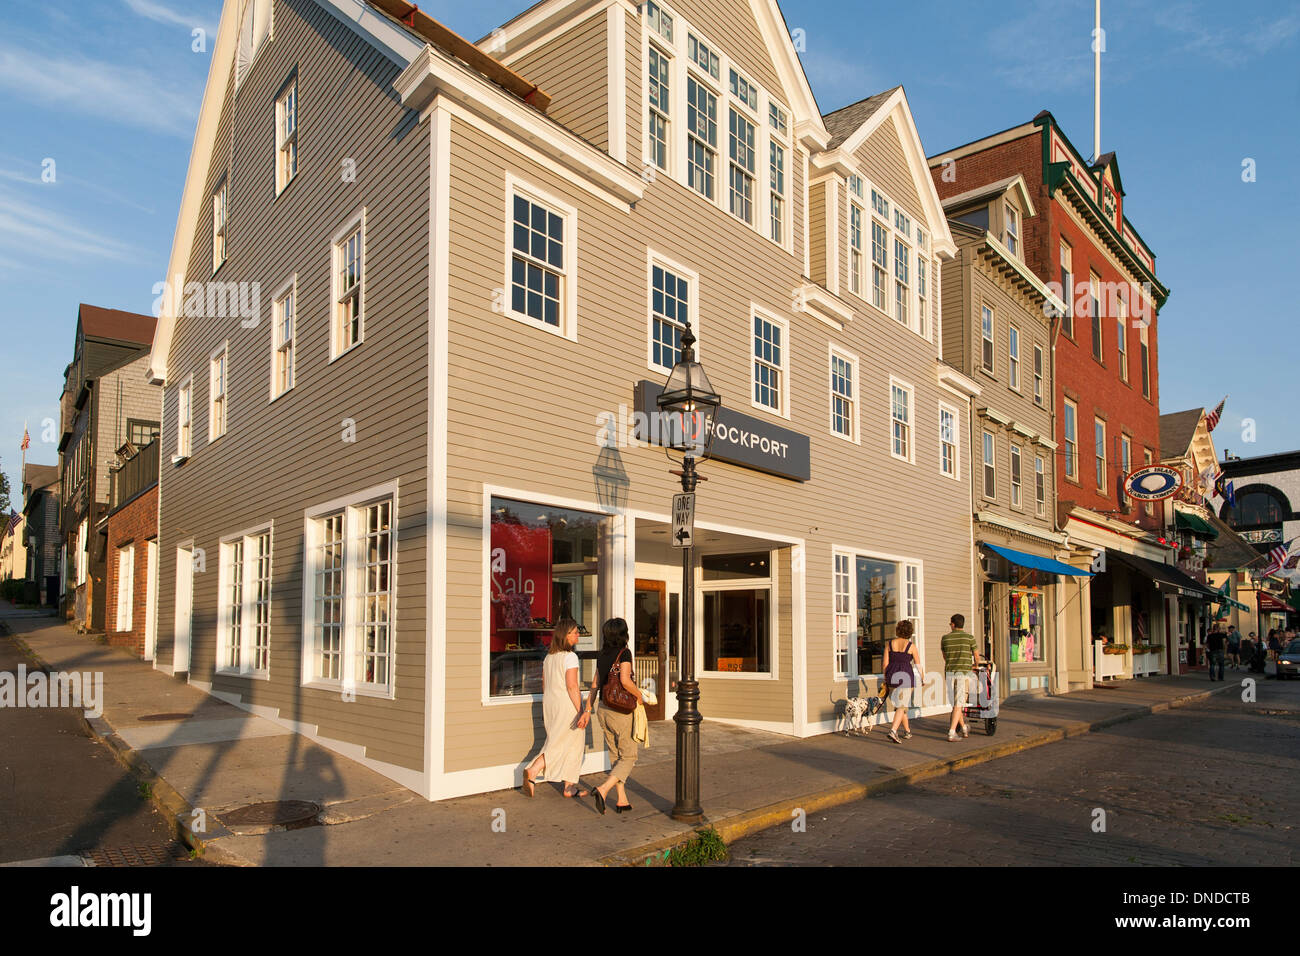 A Rockport shoe store on the corner of lower Thames Street in the New  England sailing town of Newport Rhode Island